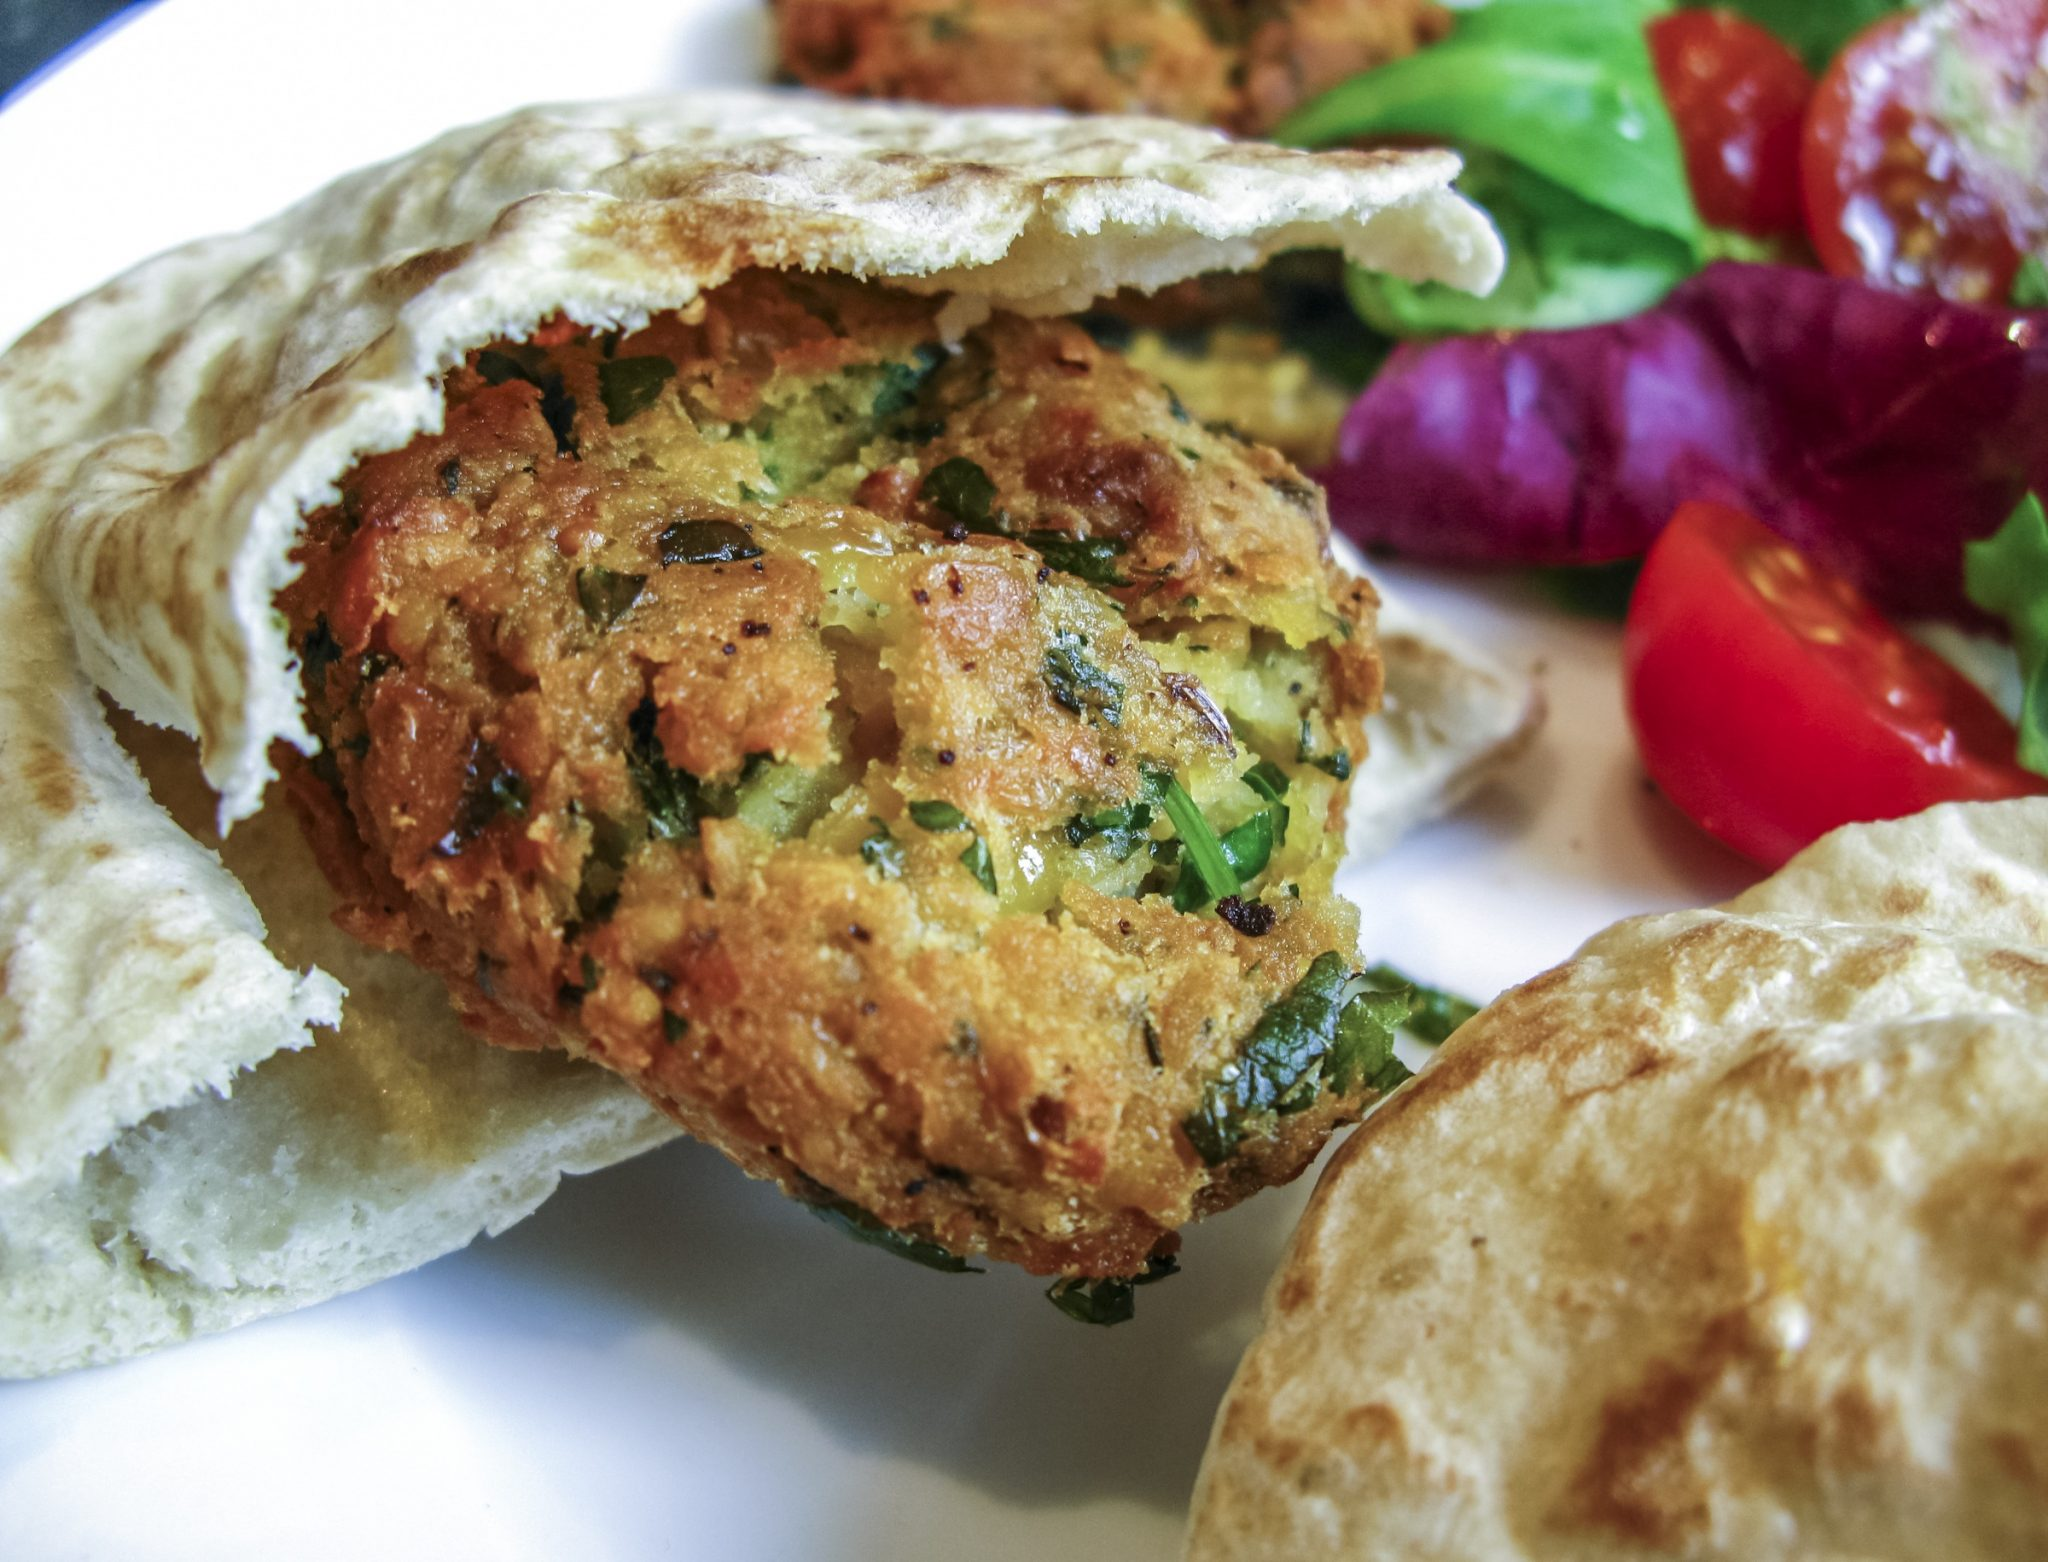 Israelis Food - Falafel - Pitta Bread